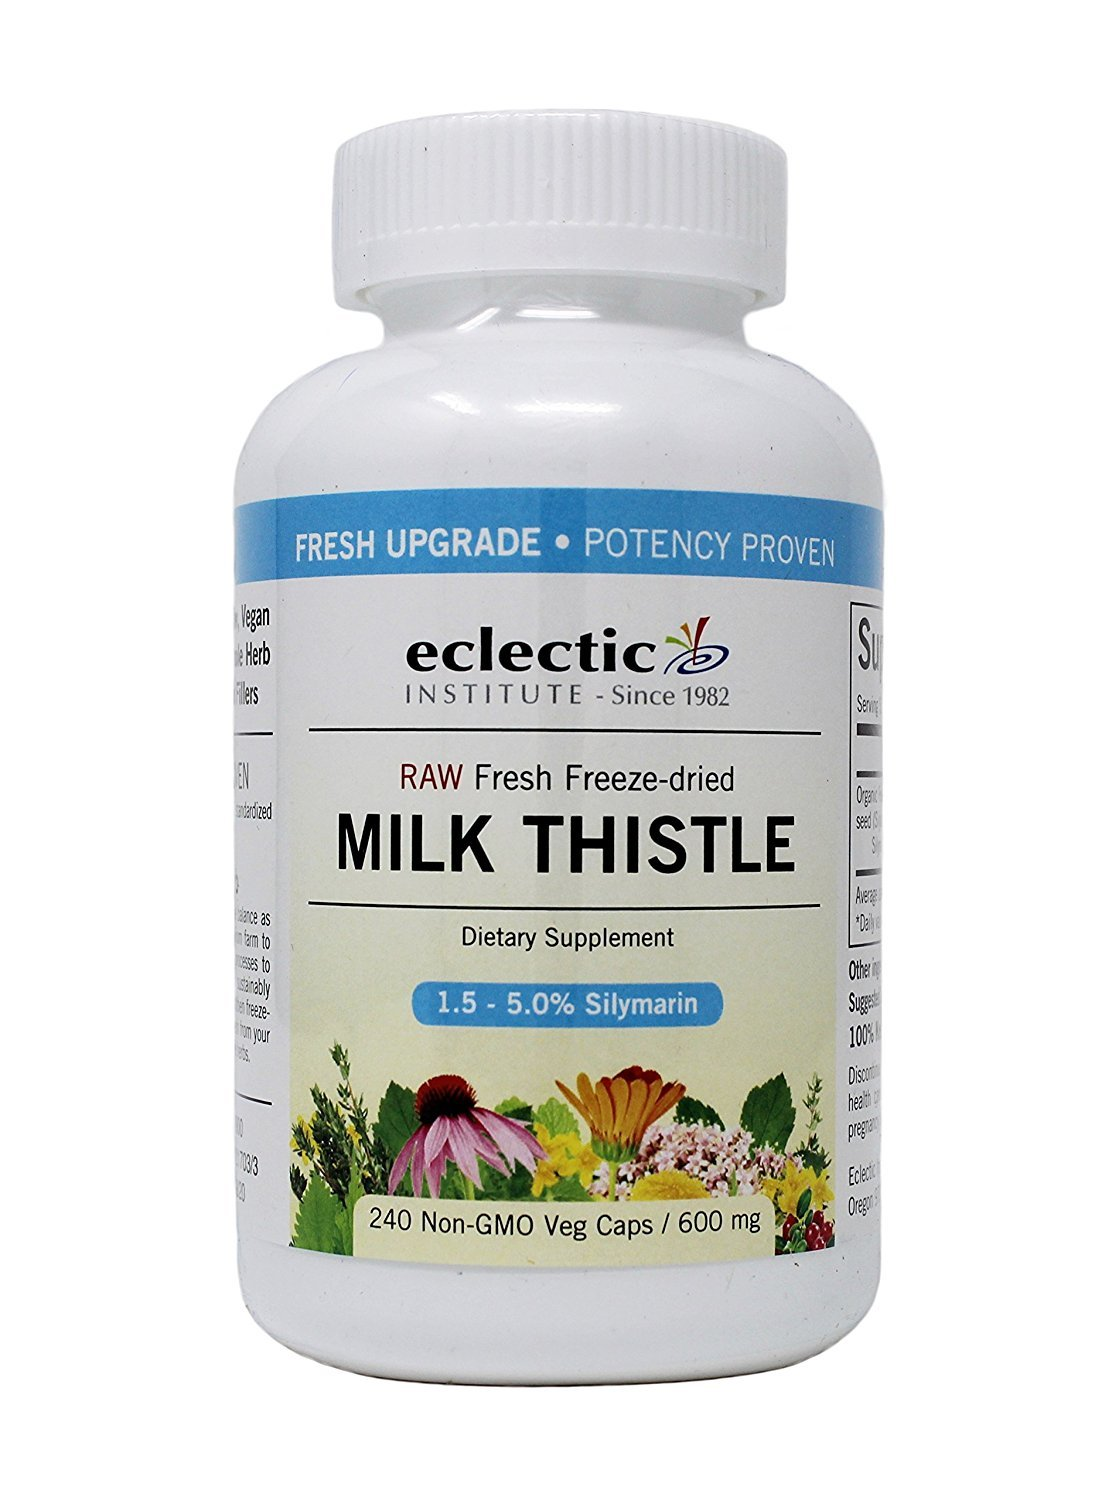 Eclectic Institute, Milk Thistle, 600 mg, 2 Packs 240 Non-GMO Veg Caps Essential Oils and Polysaccharides